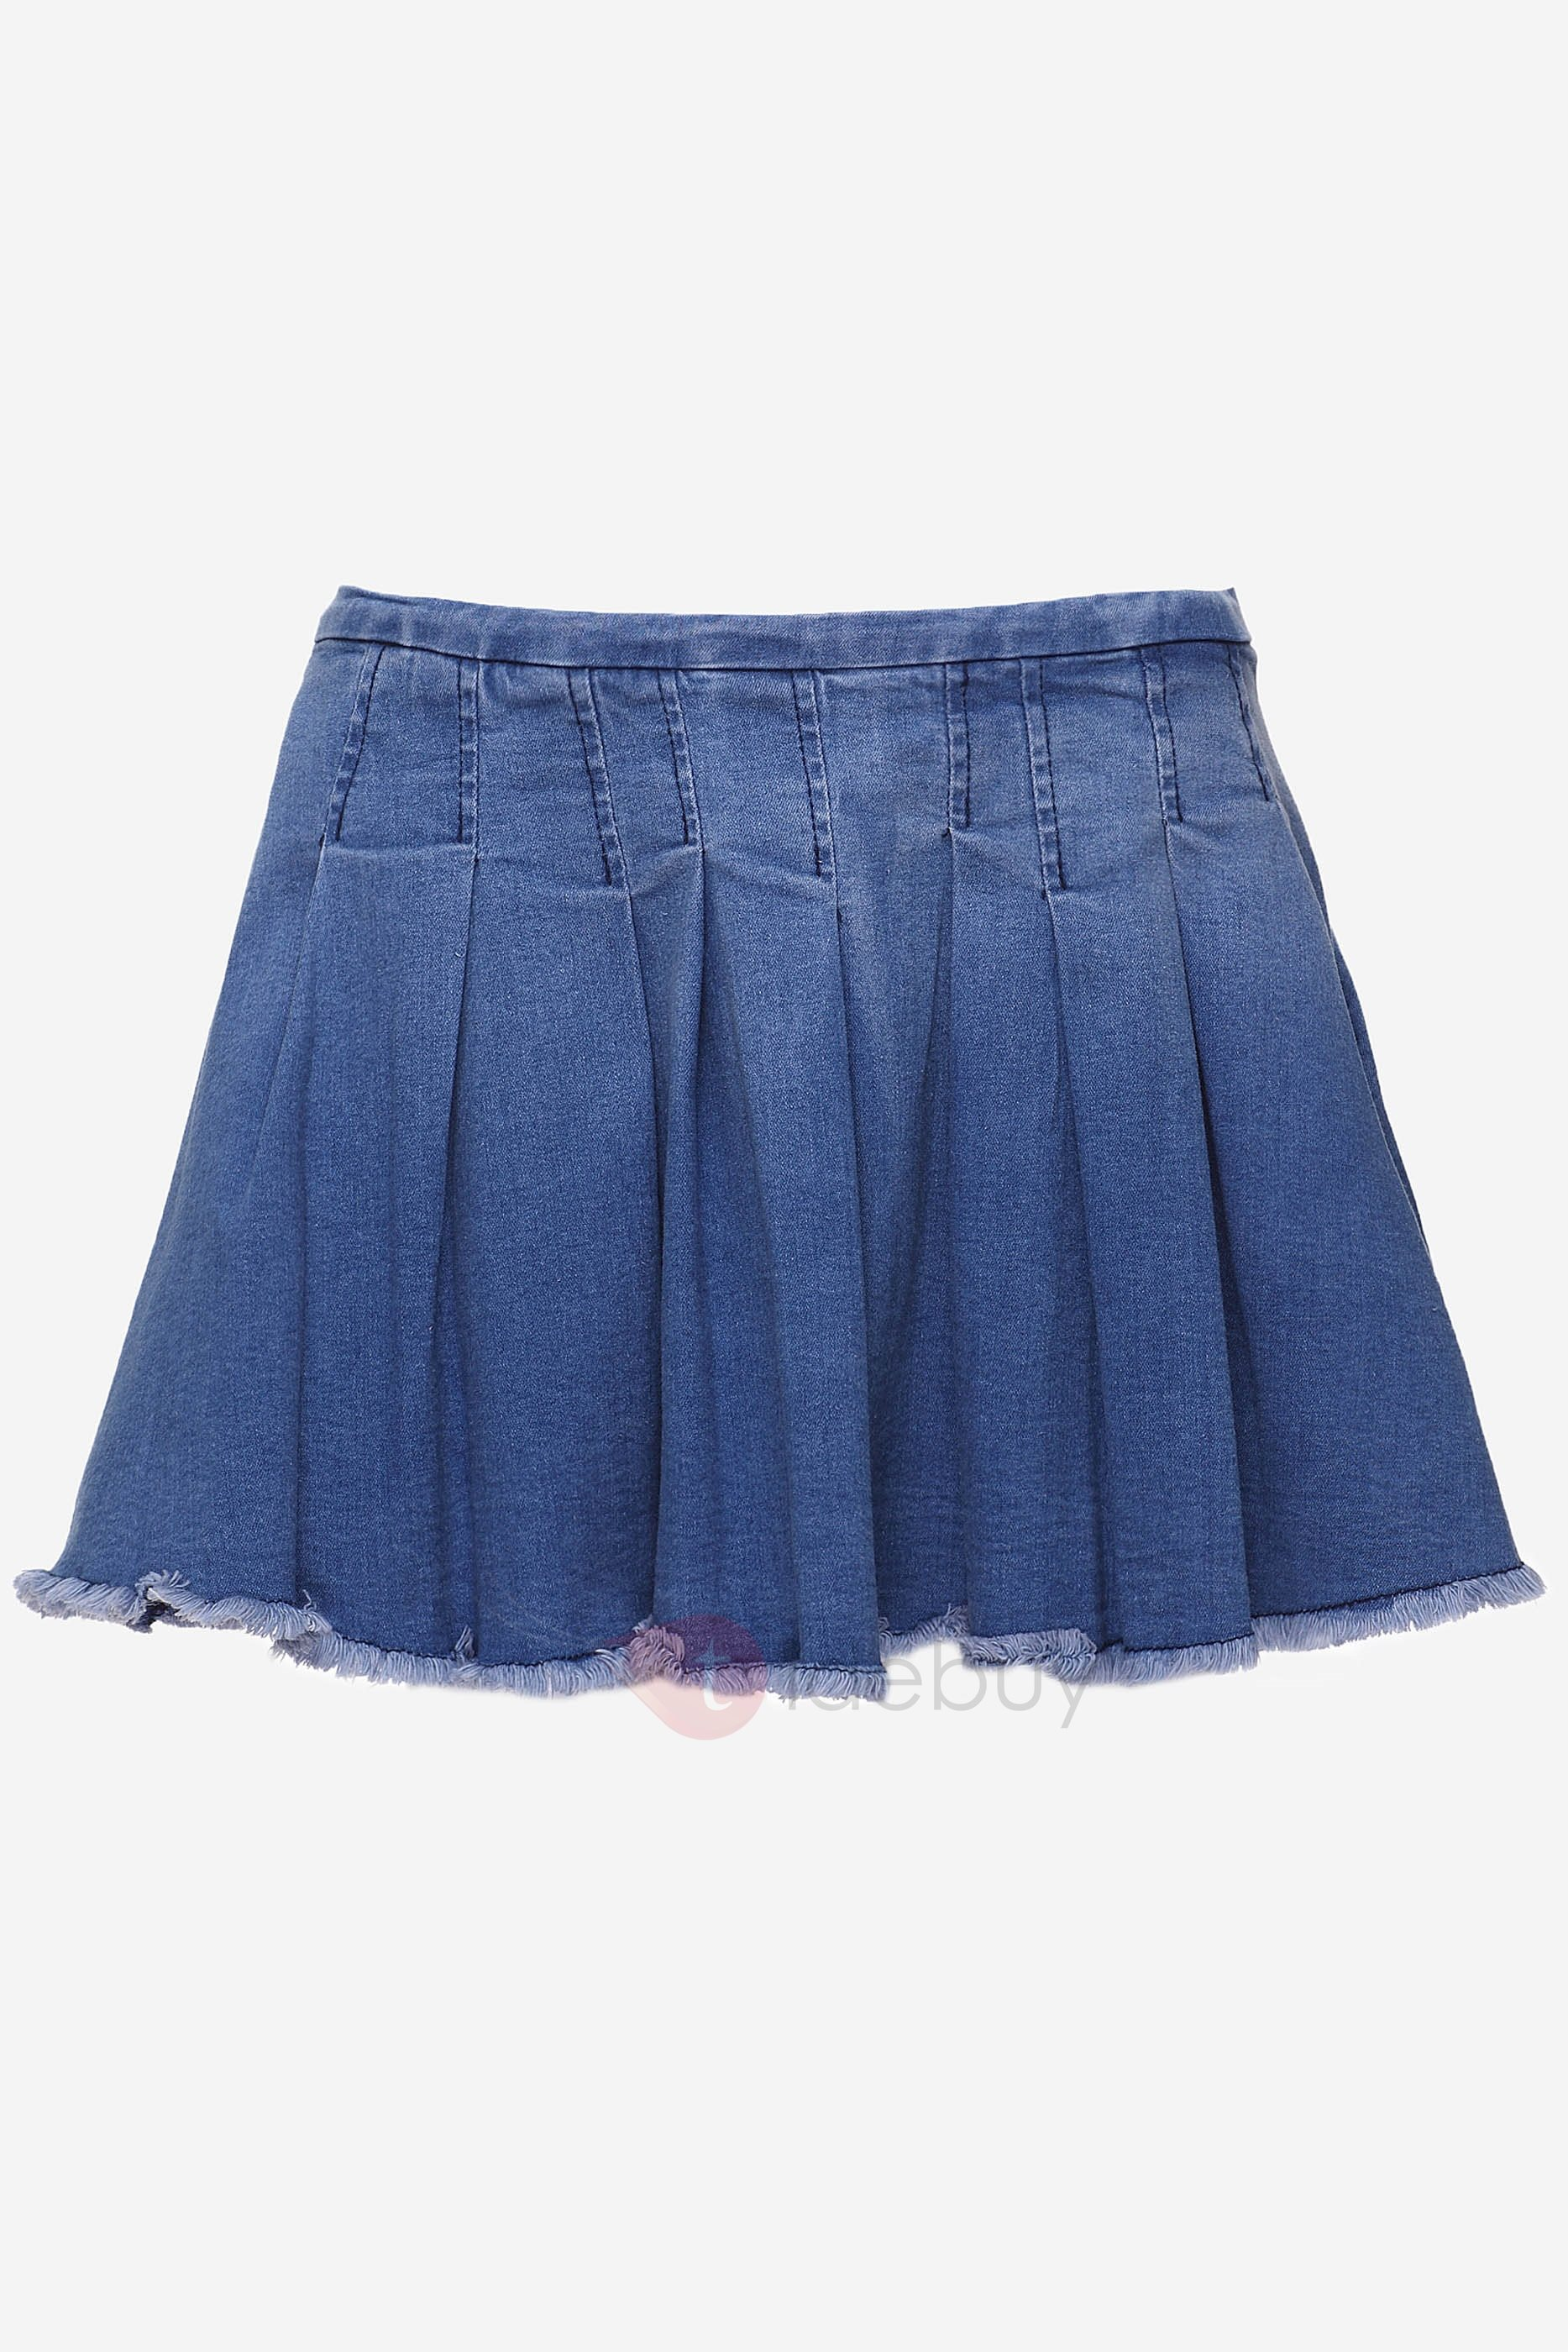 Blue Lace  Pleated Jeans Skirt